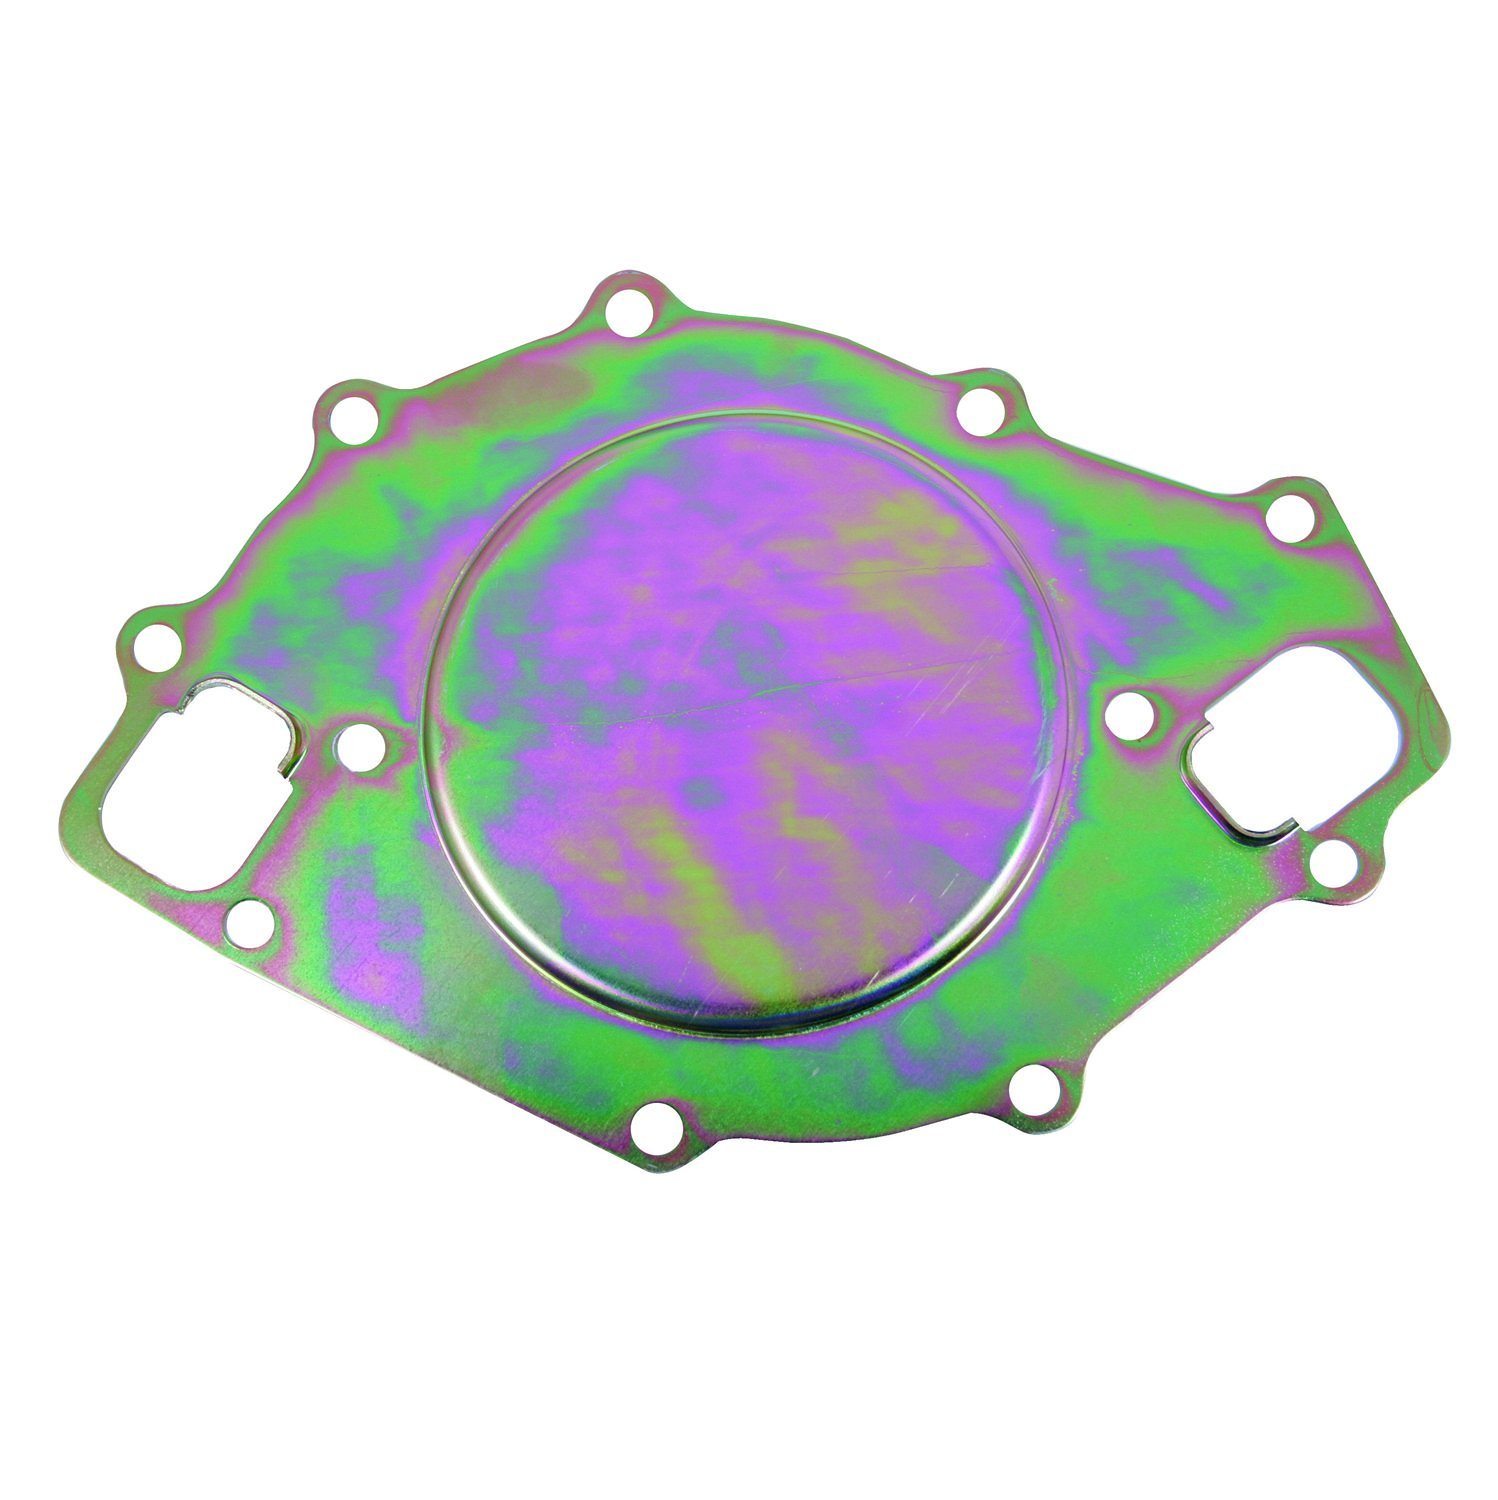 Ford Racing M 8501 460bp Water Pump Backing Plate 1974 F100 460 Engine Diagram Automotive